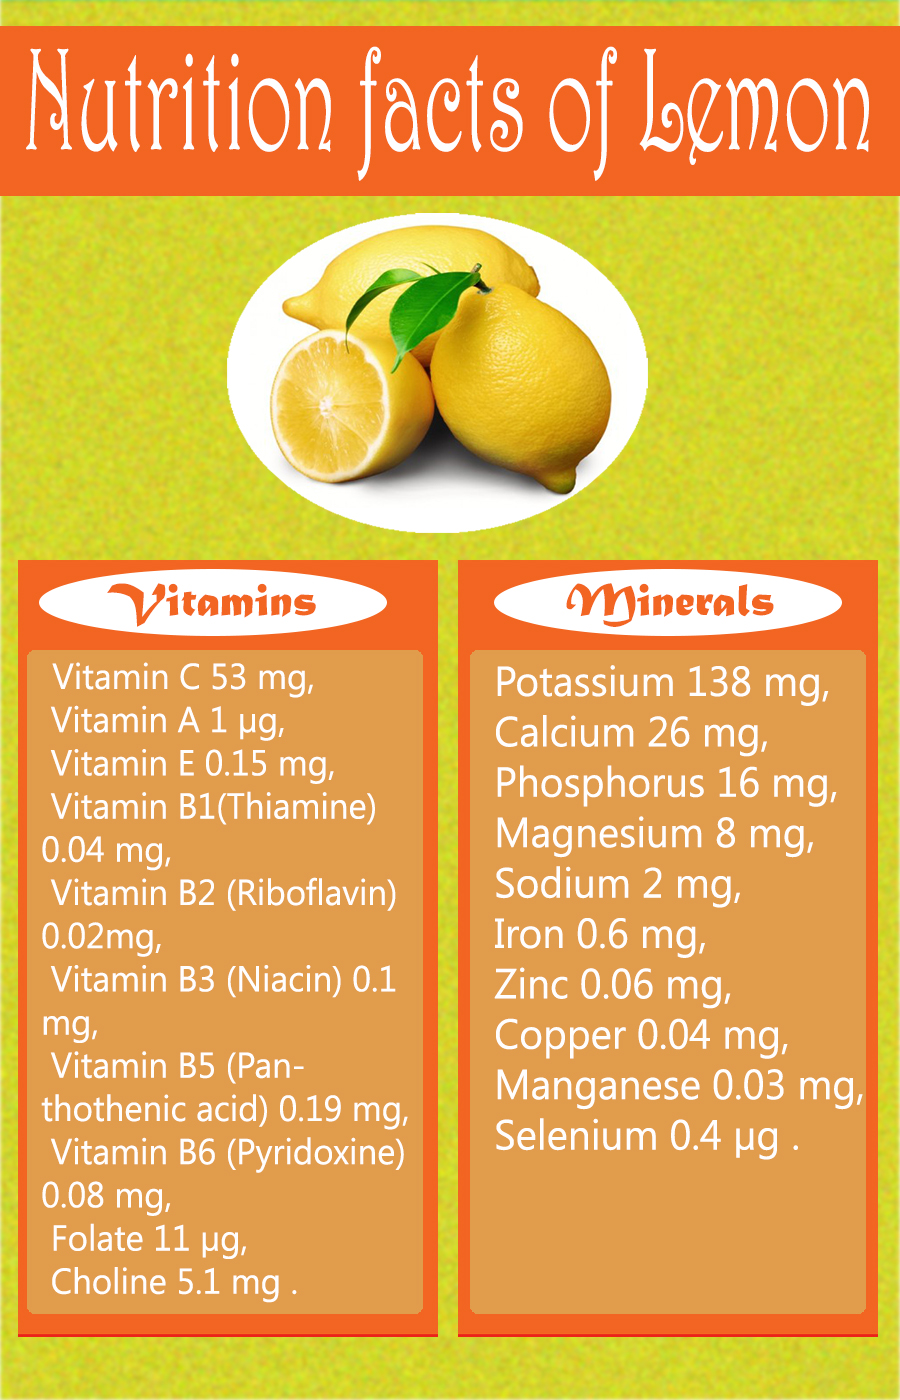 Lemon Nutrition facts and benefits